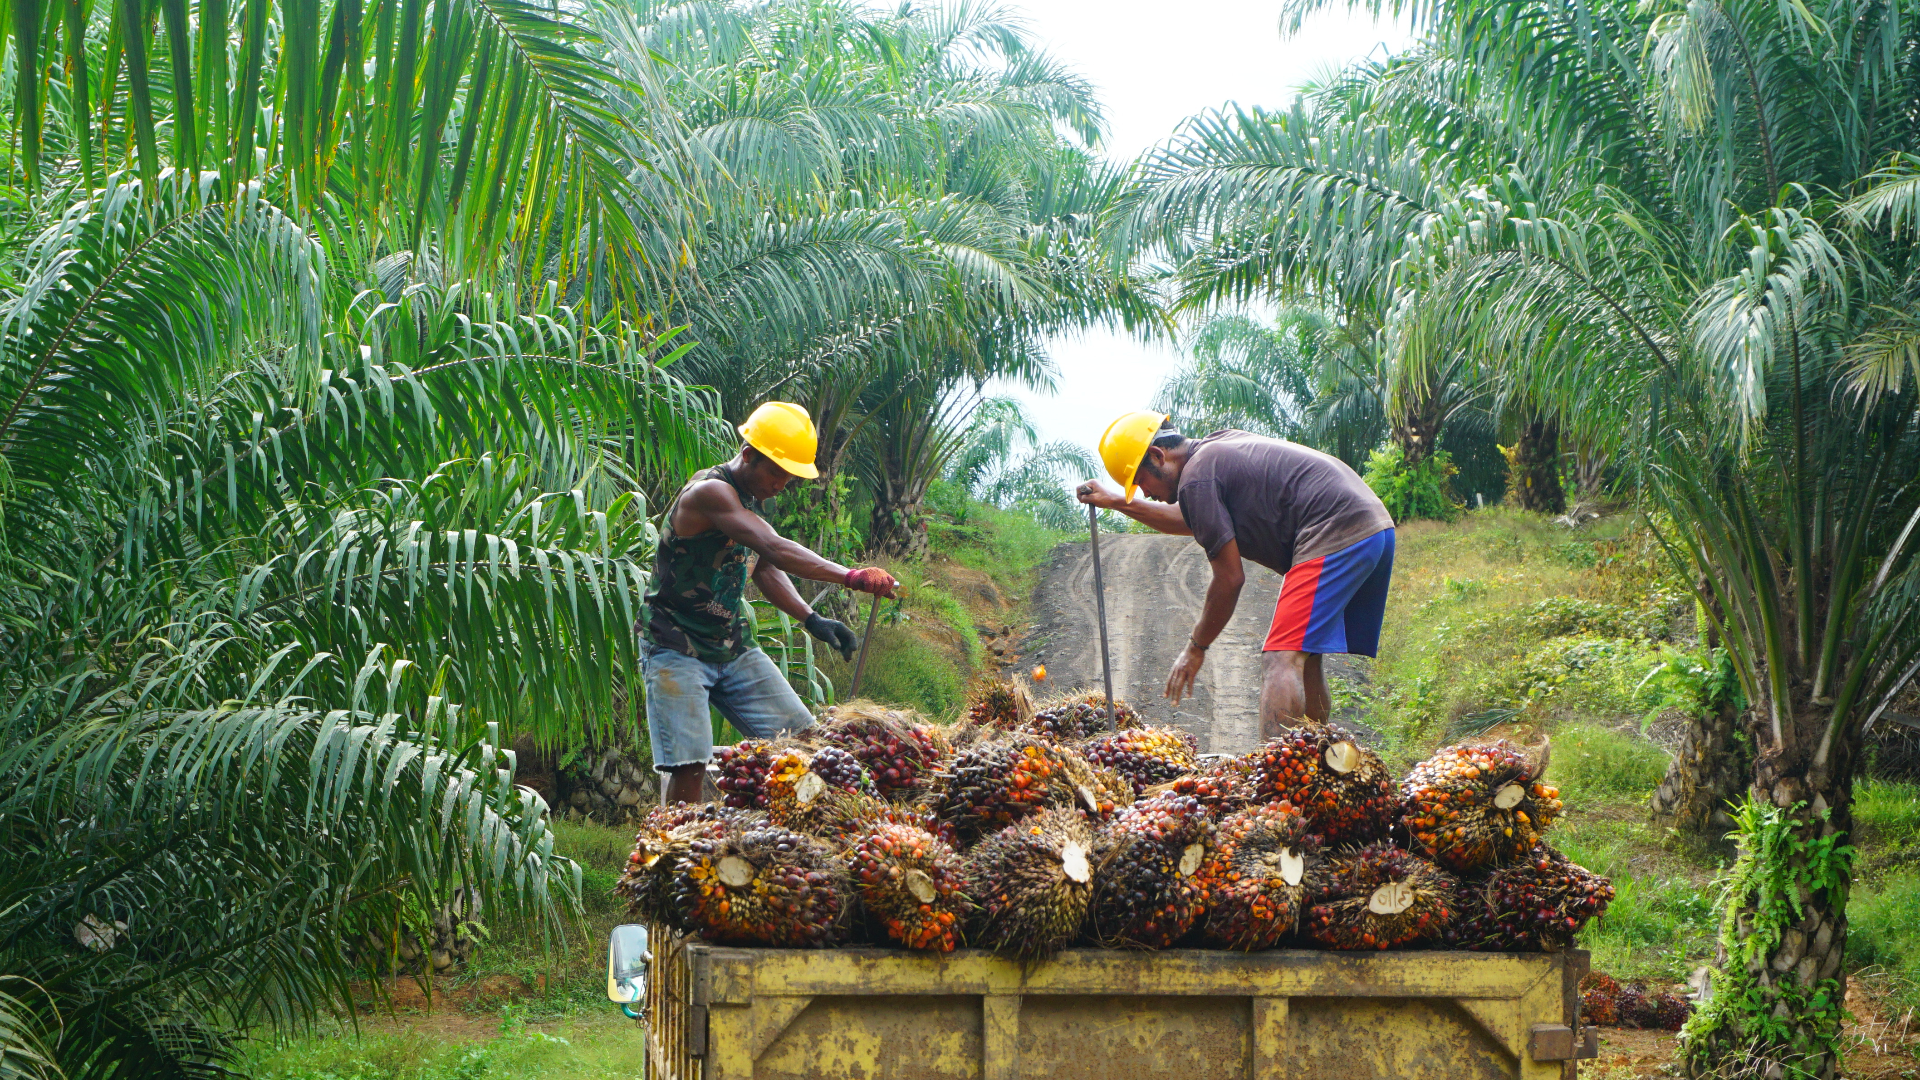 Beyond the 2020 milestone: crucial actions to make sustainable palm oil the norm